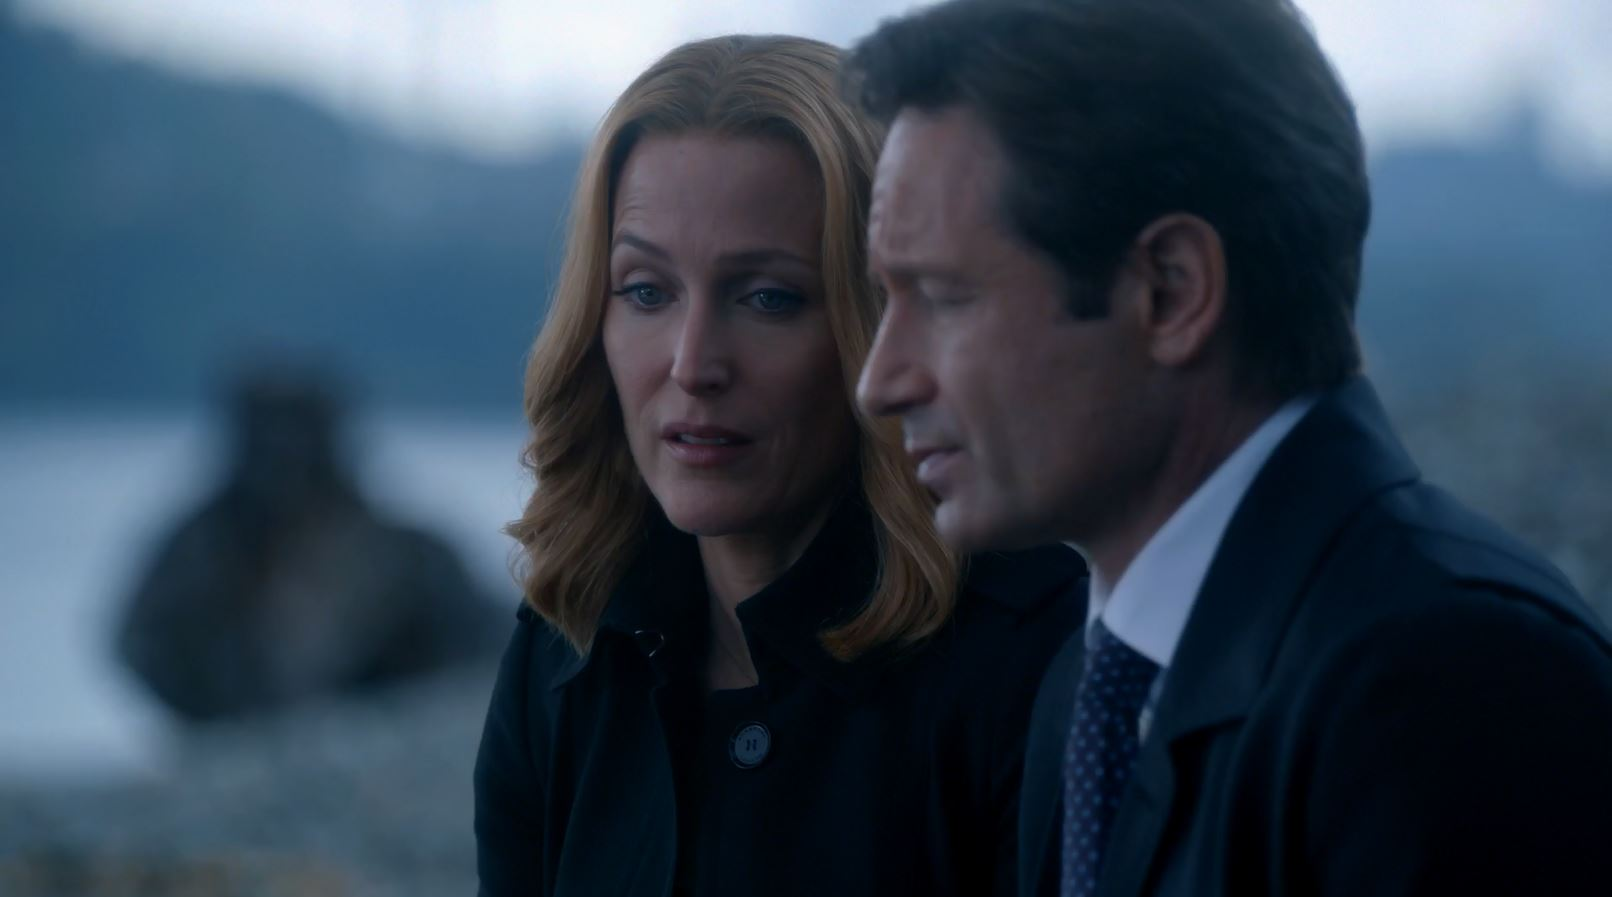 Scully and Mulder talk about William. X-Files S10E04 Home Again Review